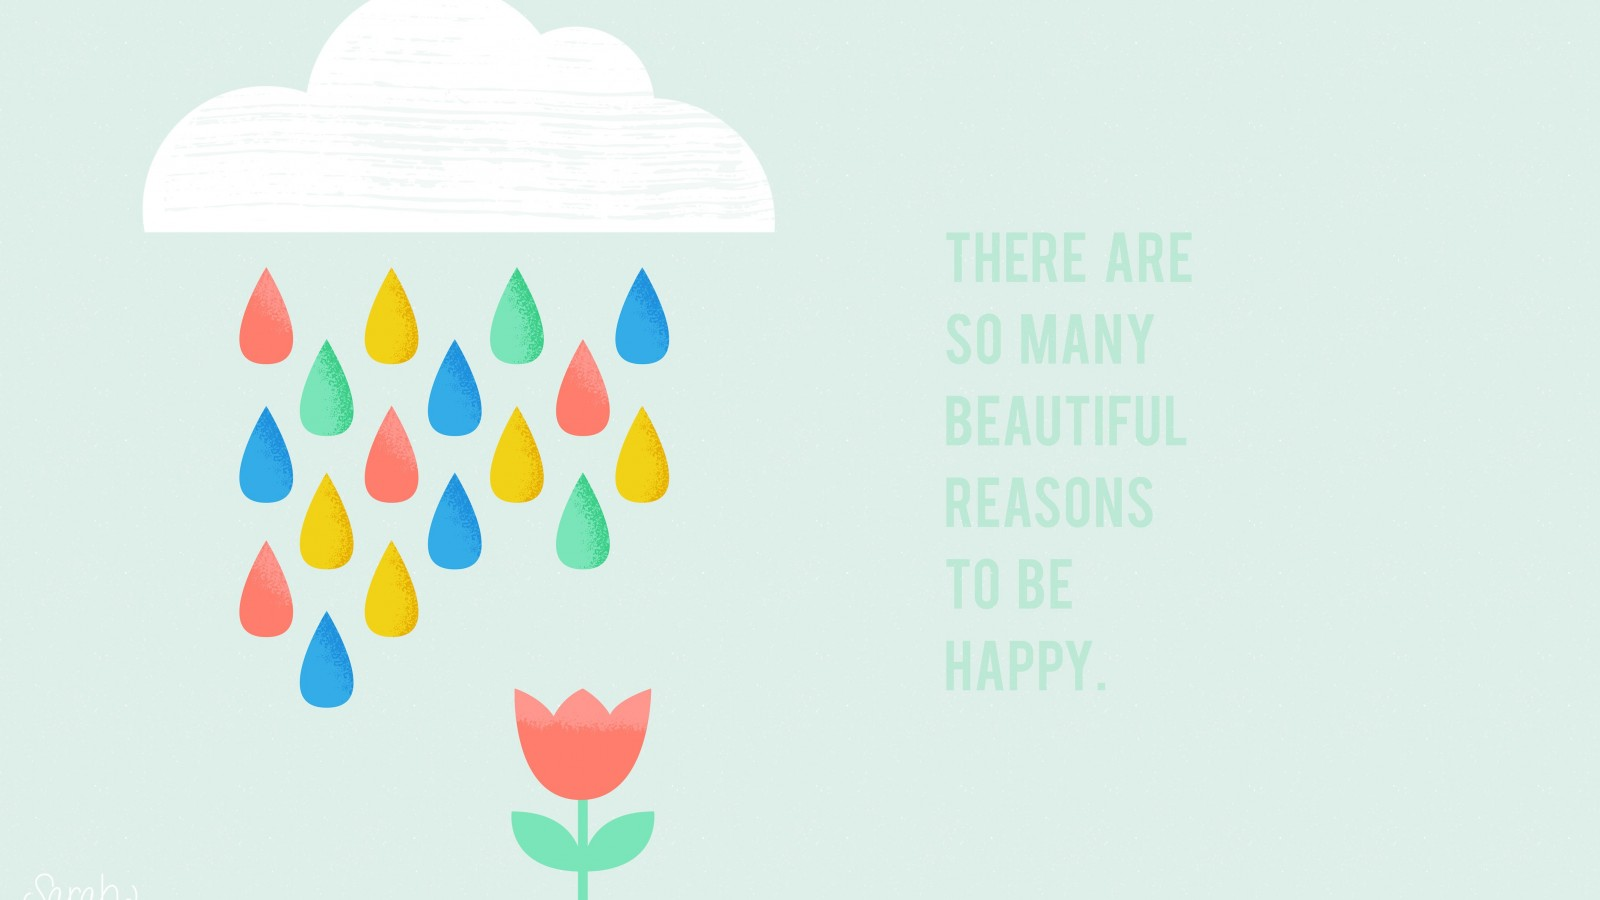 There are so many reasons to be happy Wallpaper for Desktop 1600x900